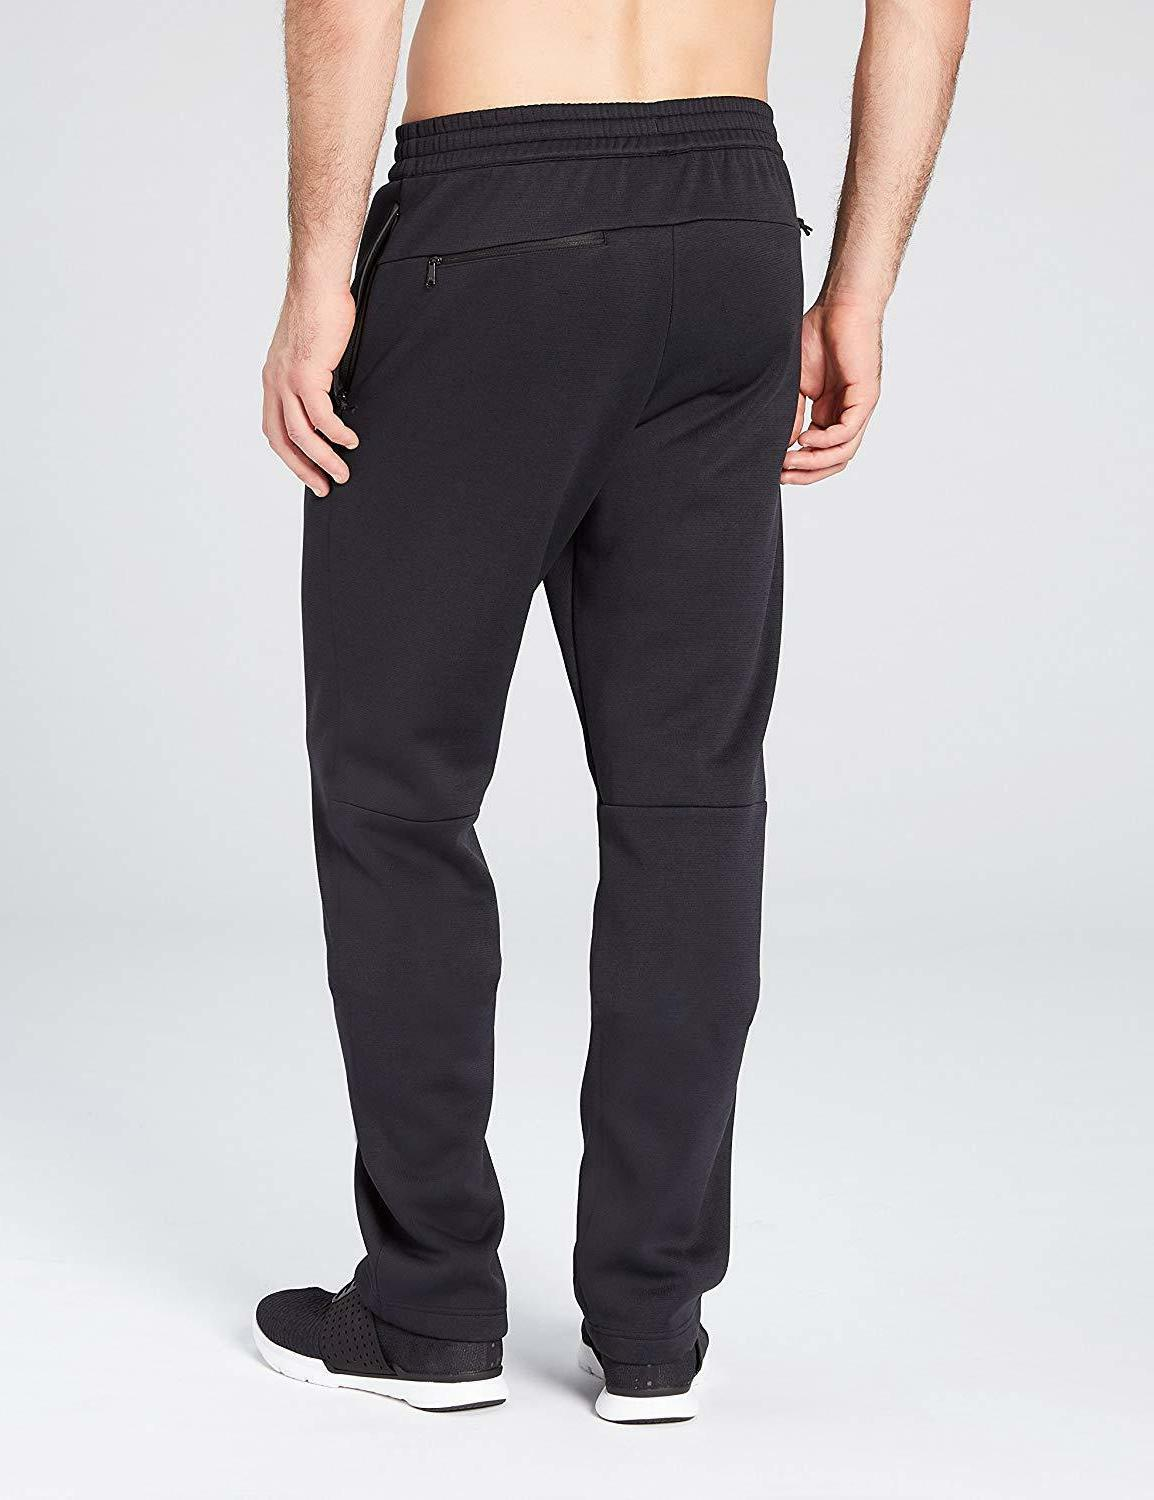 Peak Axiom Water-Repellent Loose-Fit Pant